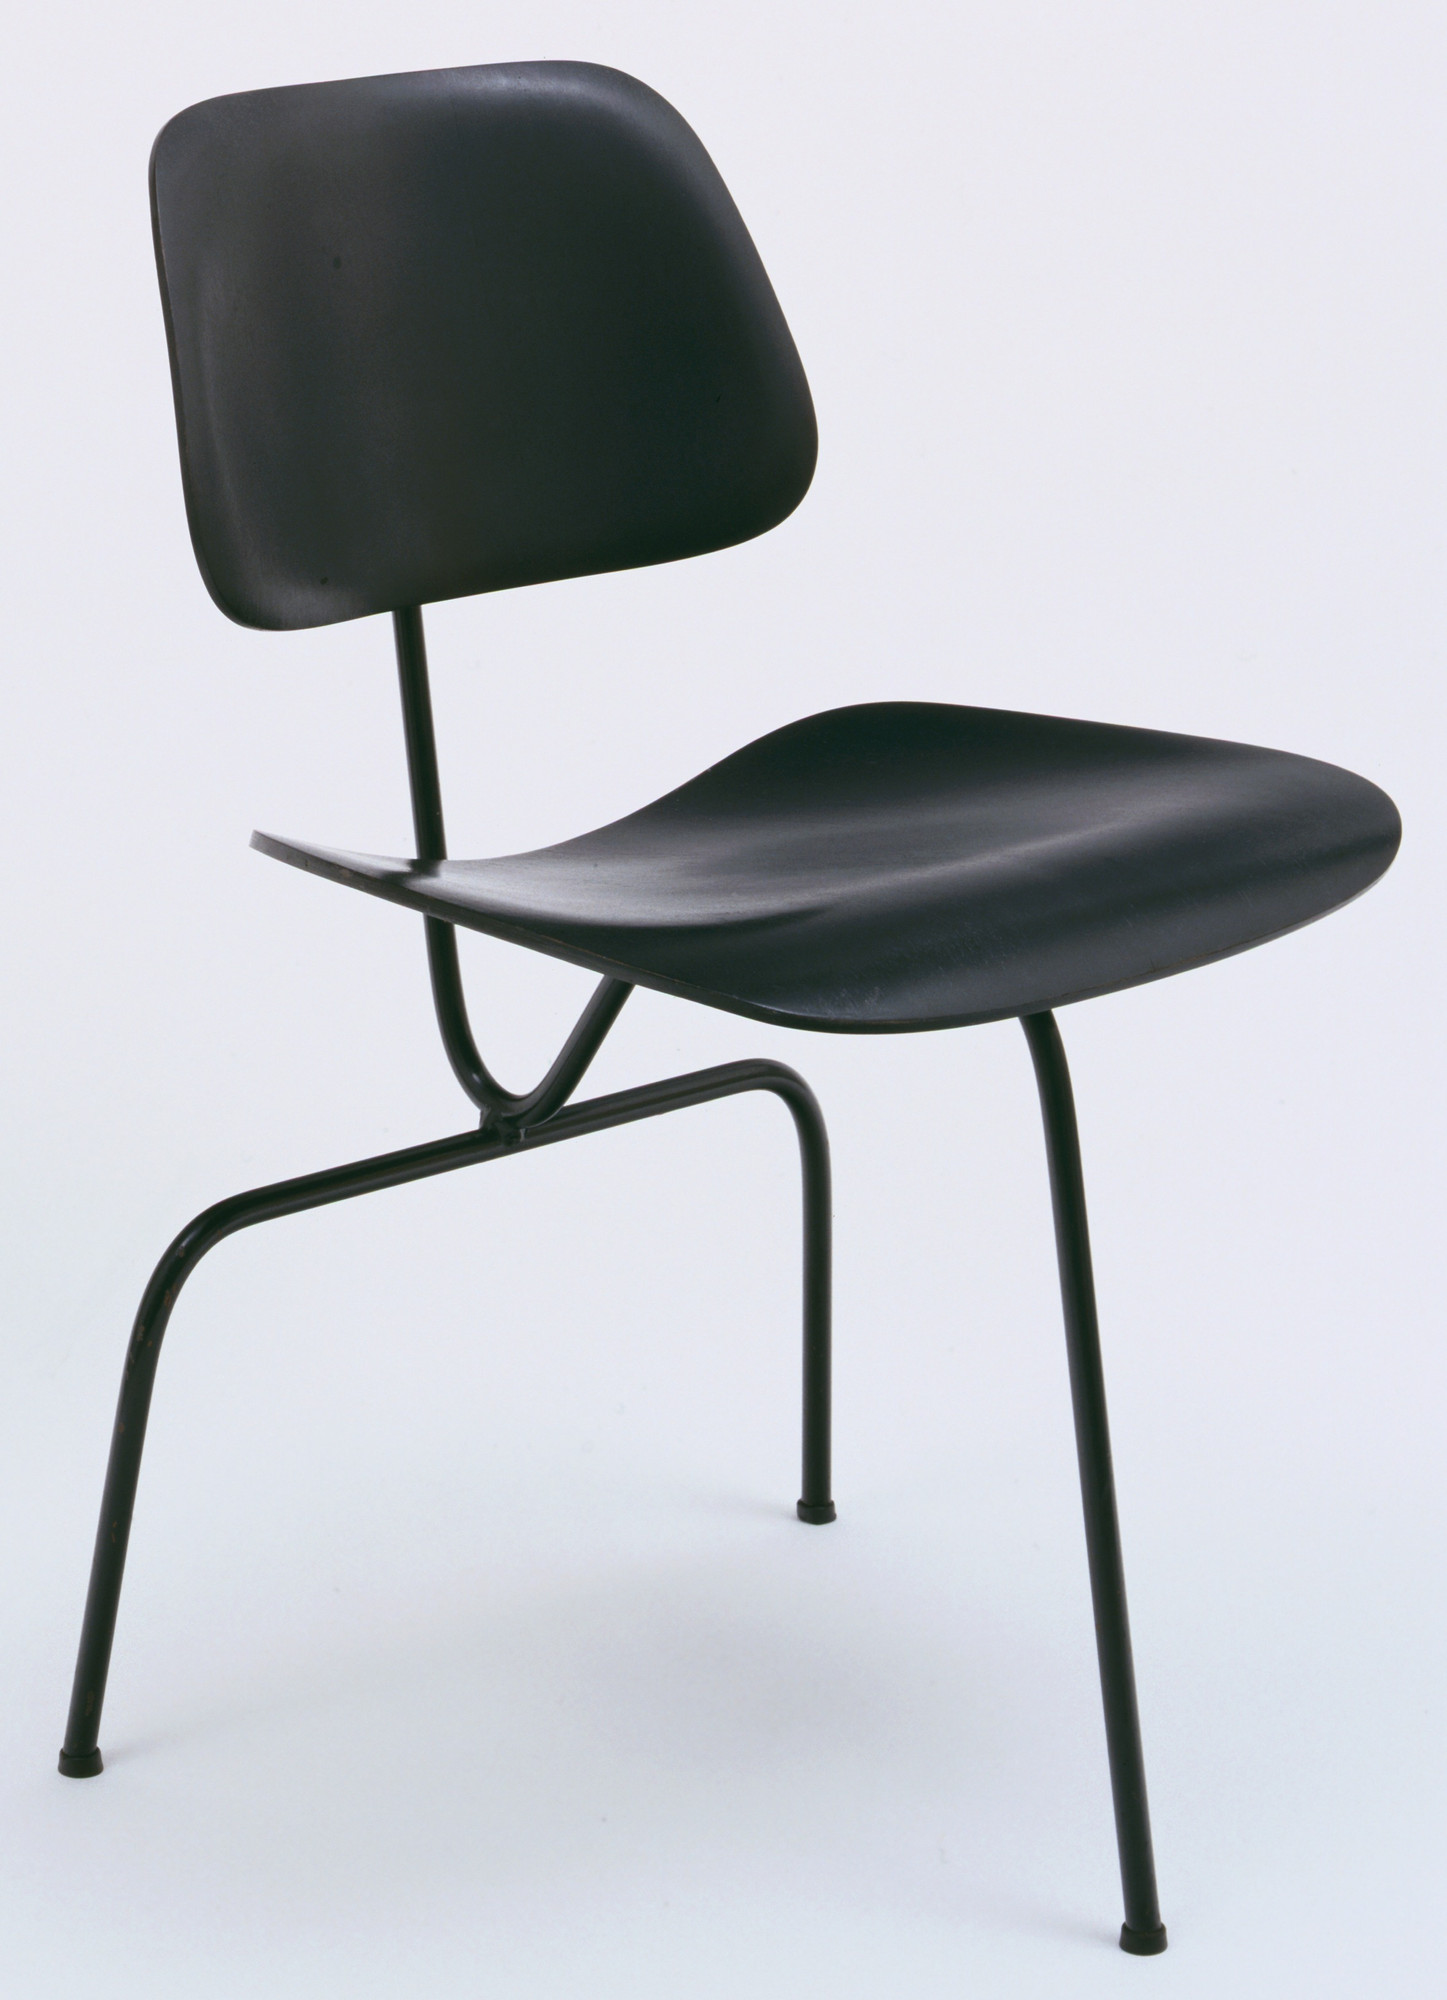 Charles Eames, Ray Eames. Three-Legged Side Chair. c. 1944